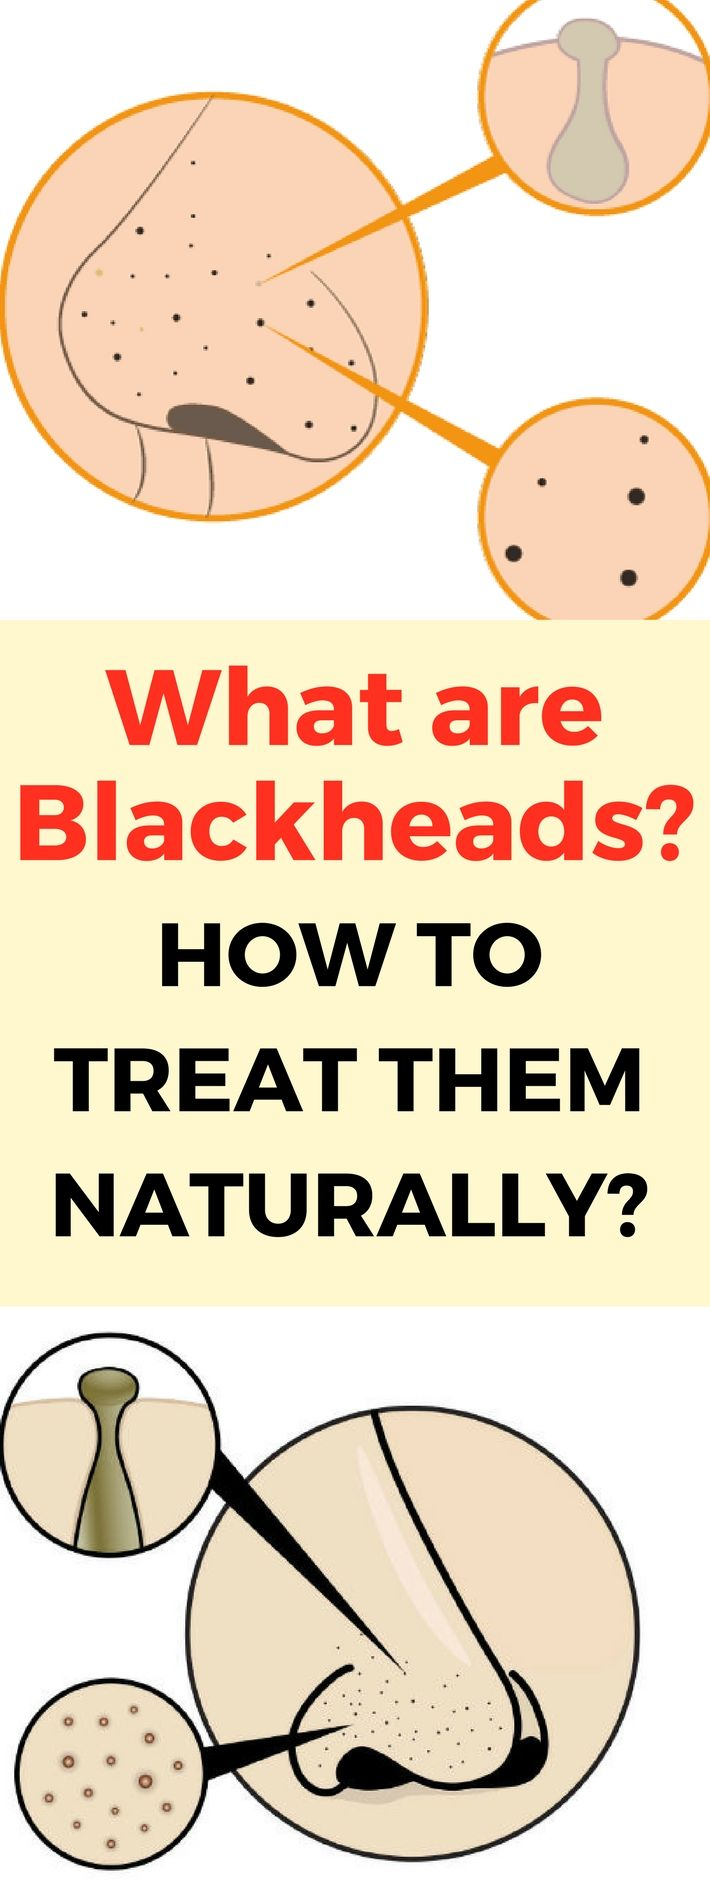 What are Blackheads and How to Treat Them Naturally?!!!